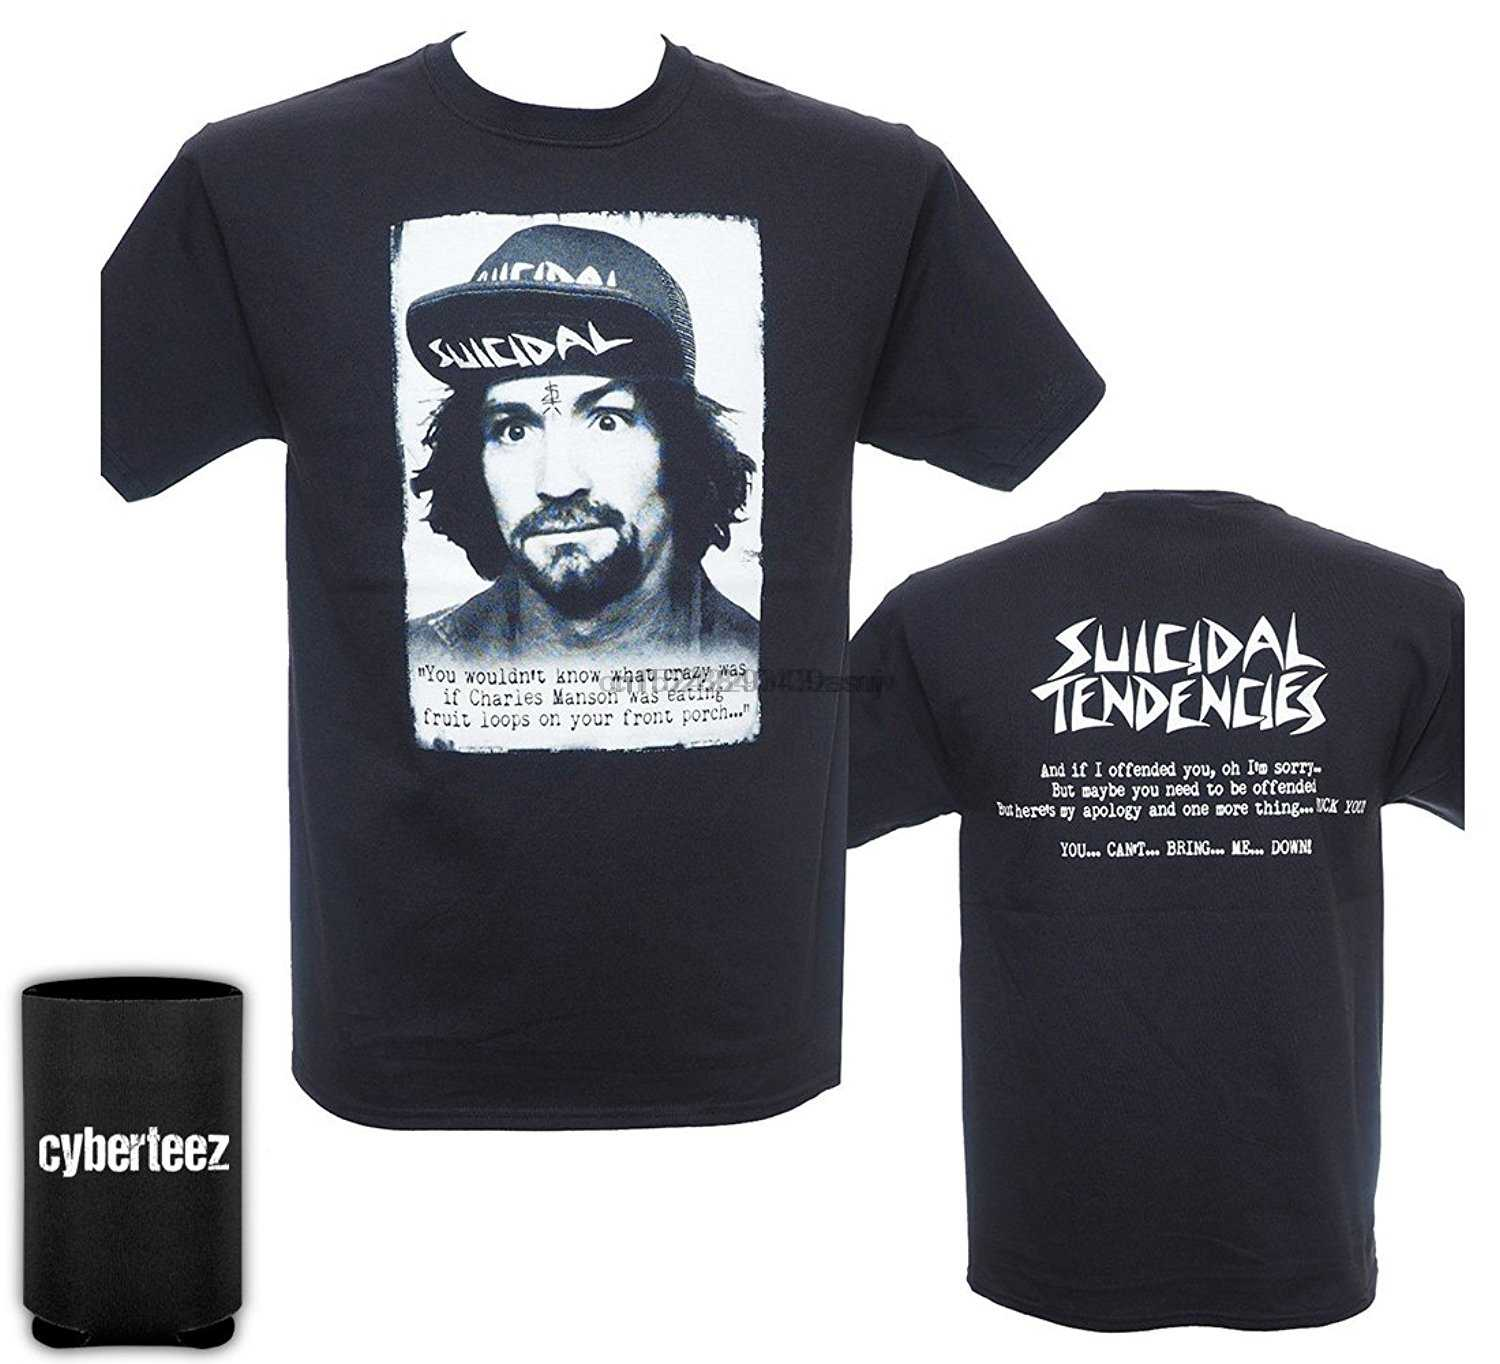 Cotton T-Shirt Fashion T Shirt Free Shipping Suicidal Tendencies Charlie Charles Manson Men' T-Shirt + Coolie (S-3XL)